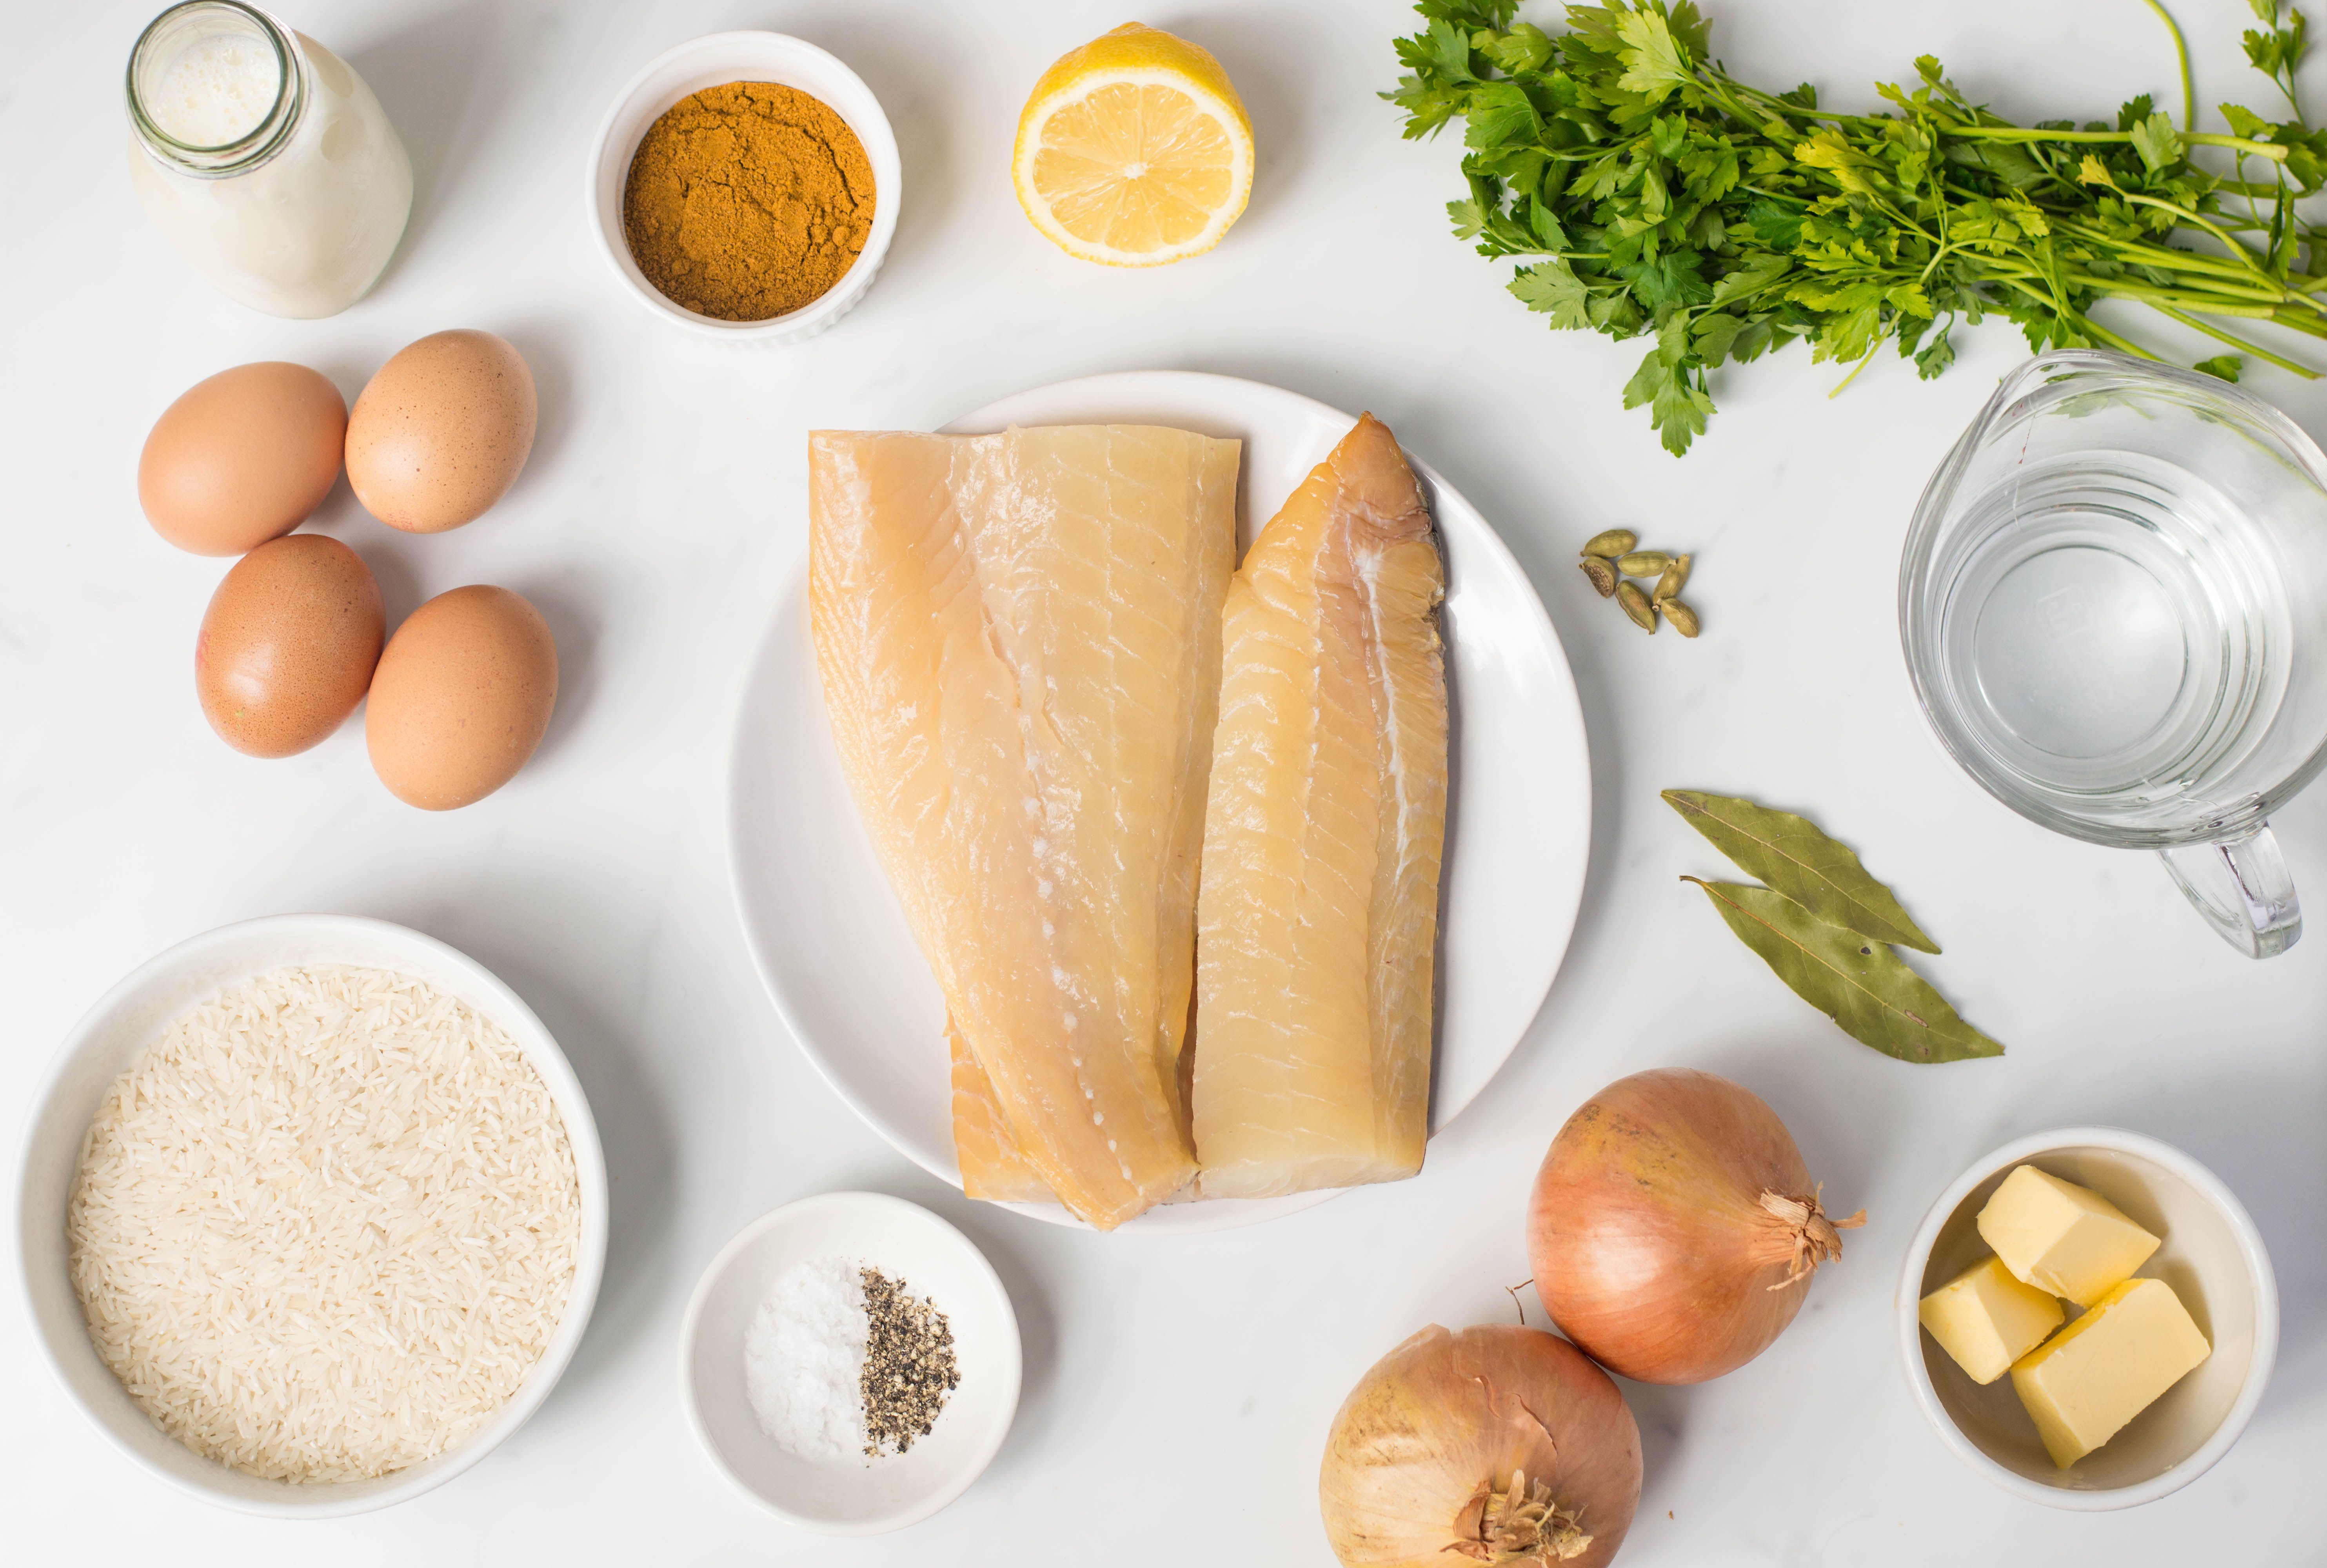 Ingredients for making traditional kedgeree